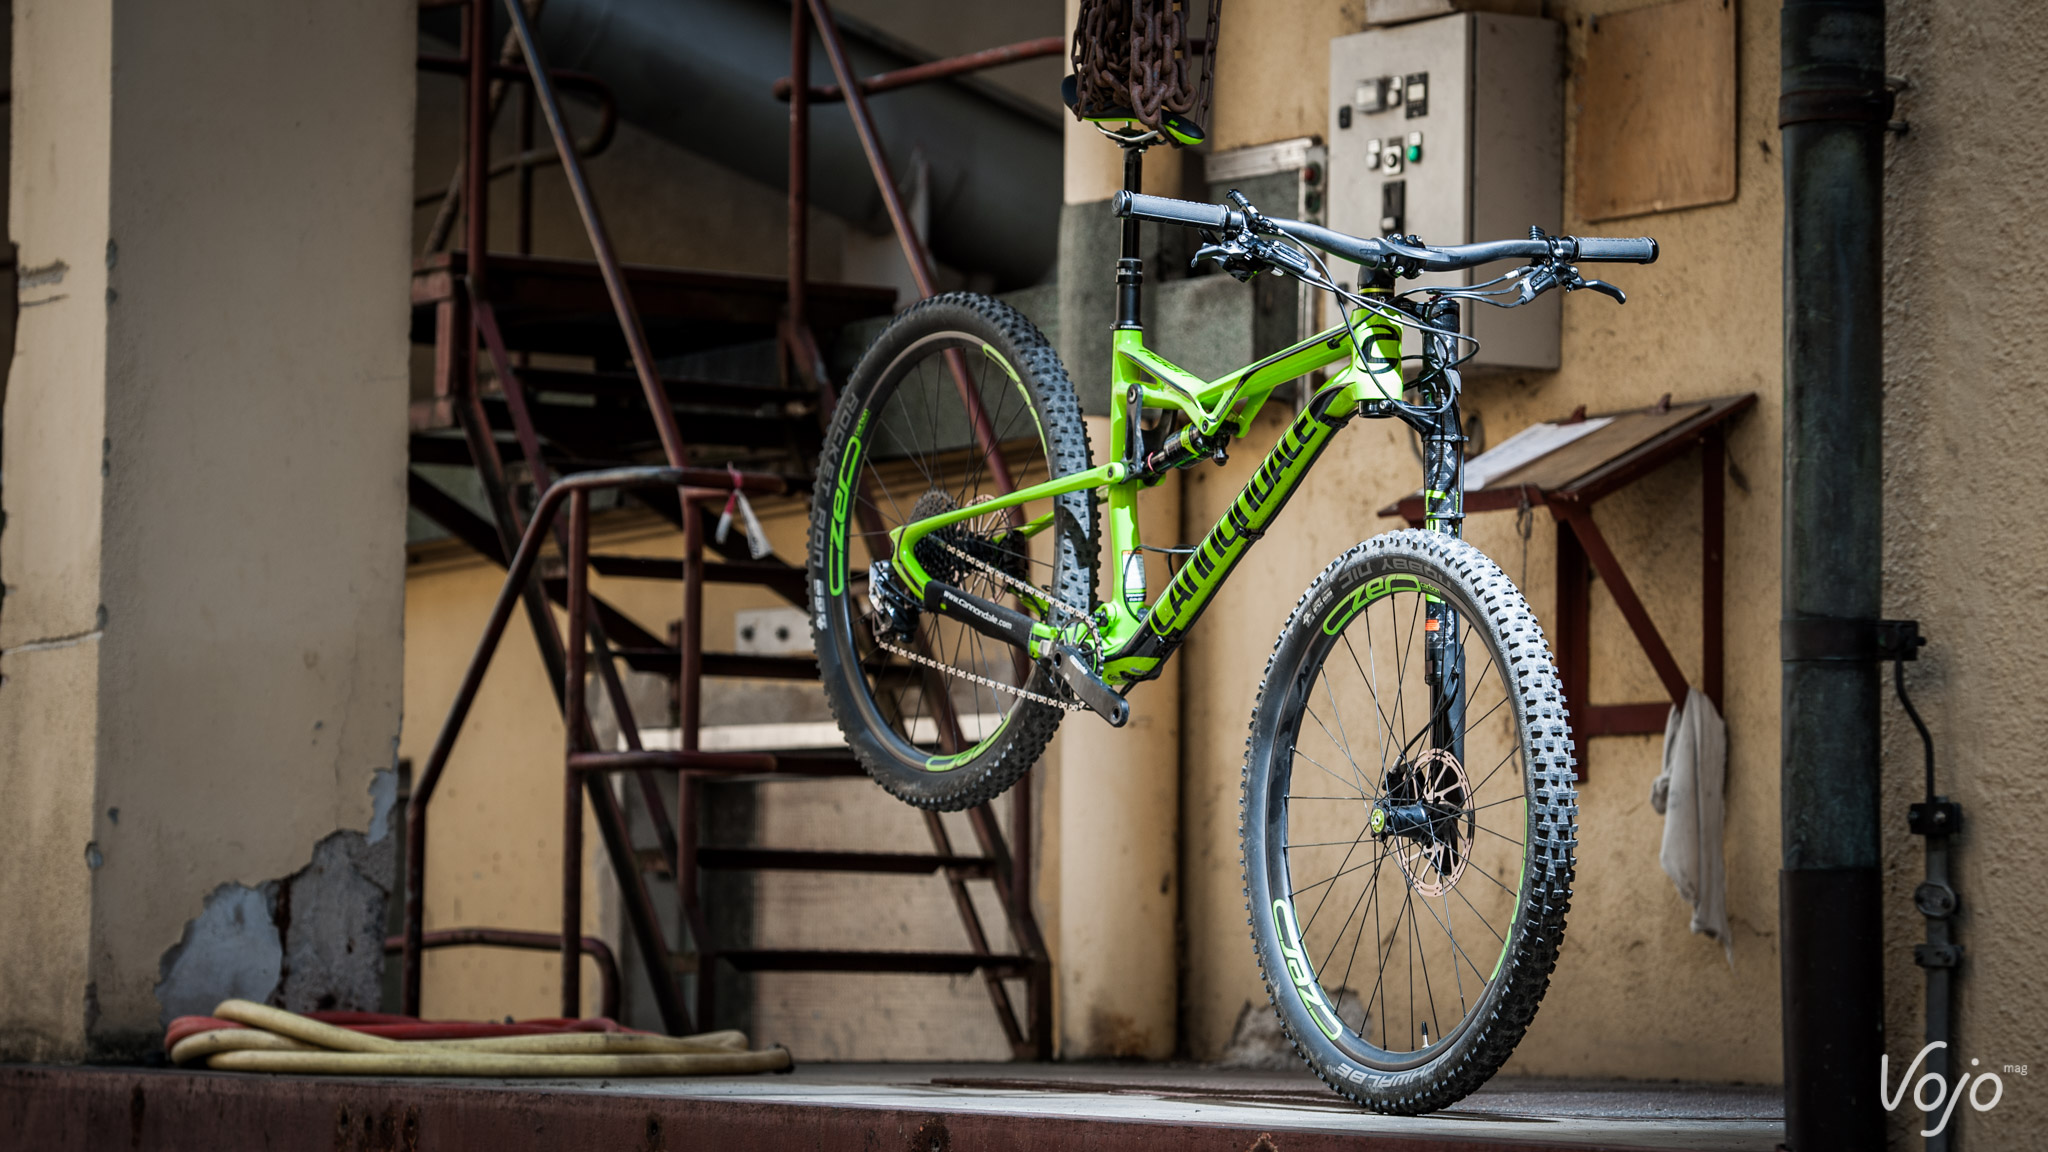 Cannondale-habit-2016-Hi-mod-1-vojo-paul-humbert-first-ride-18